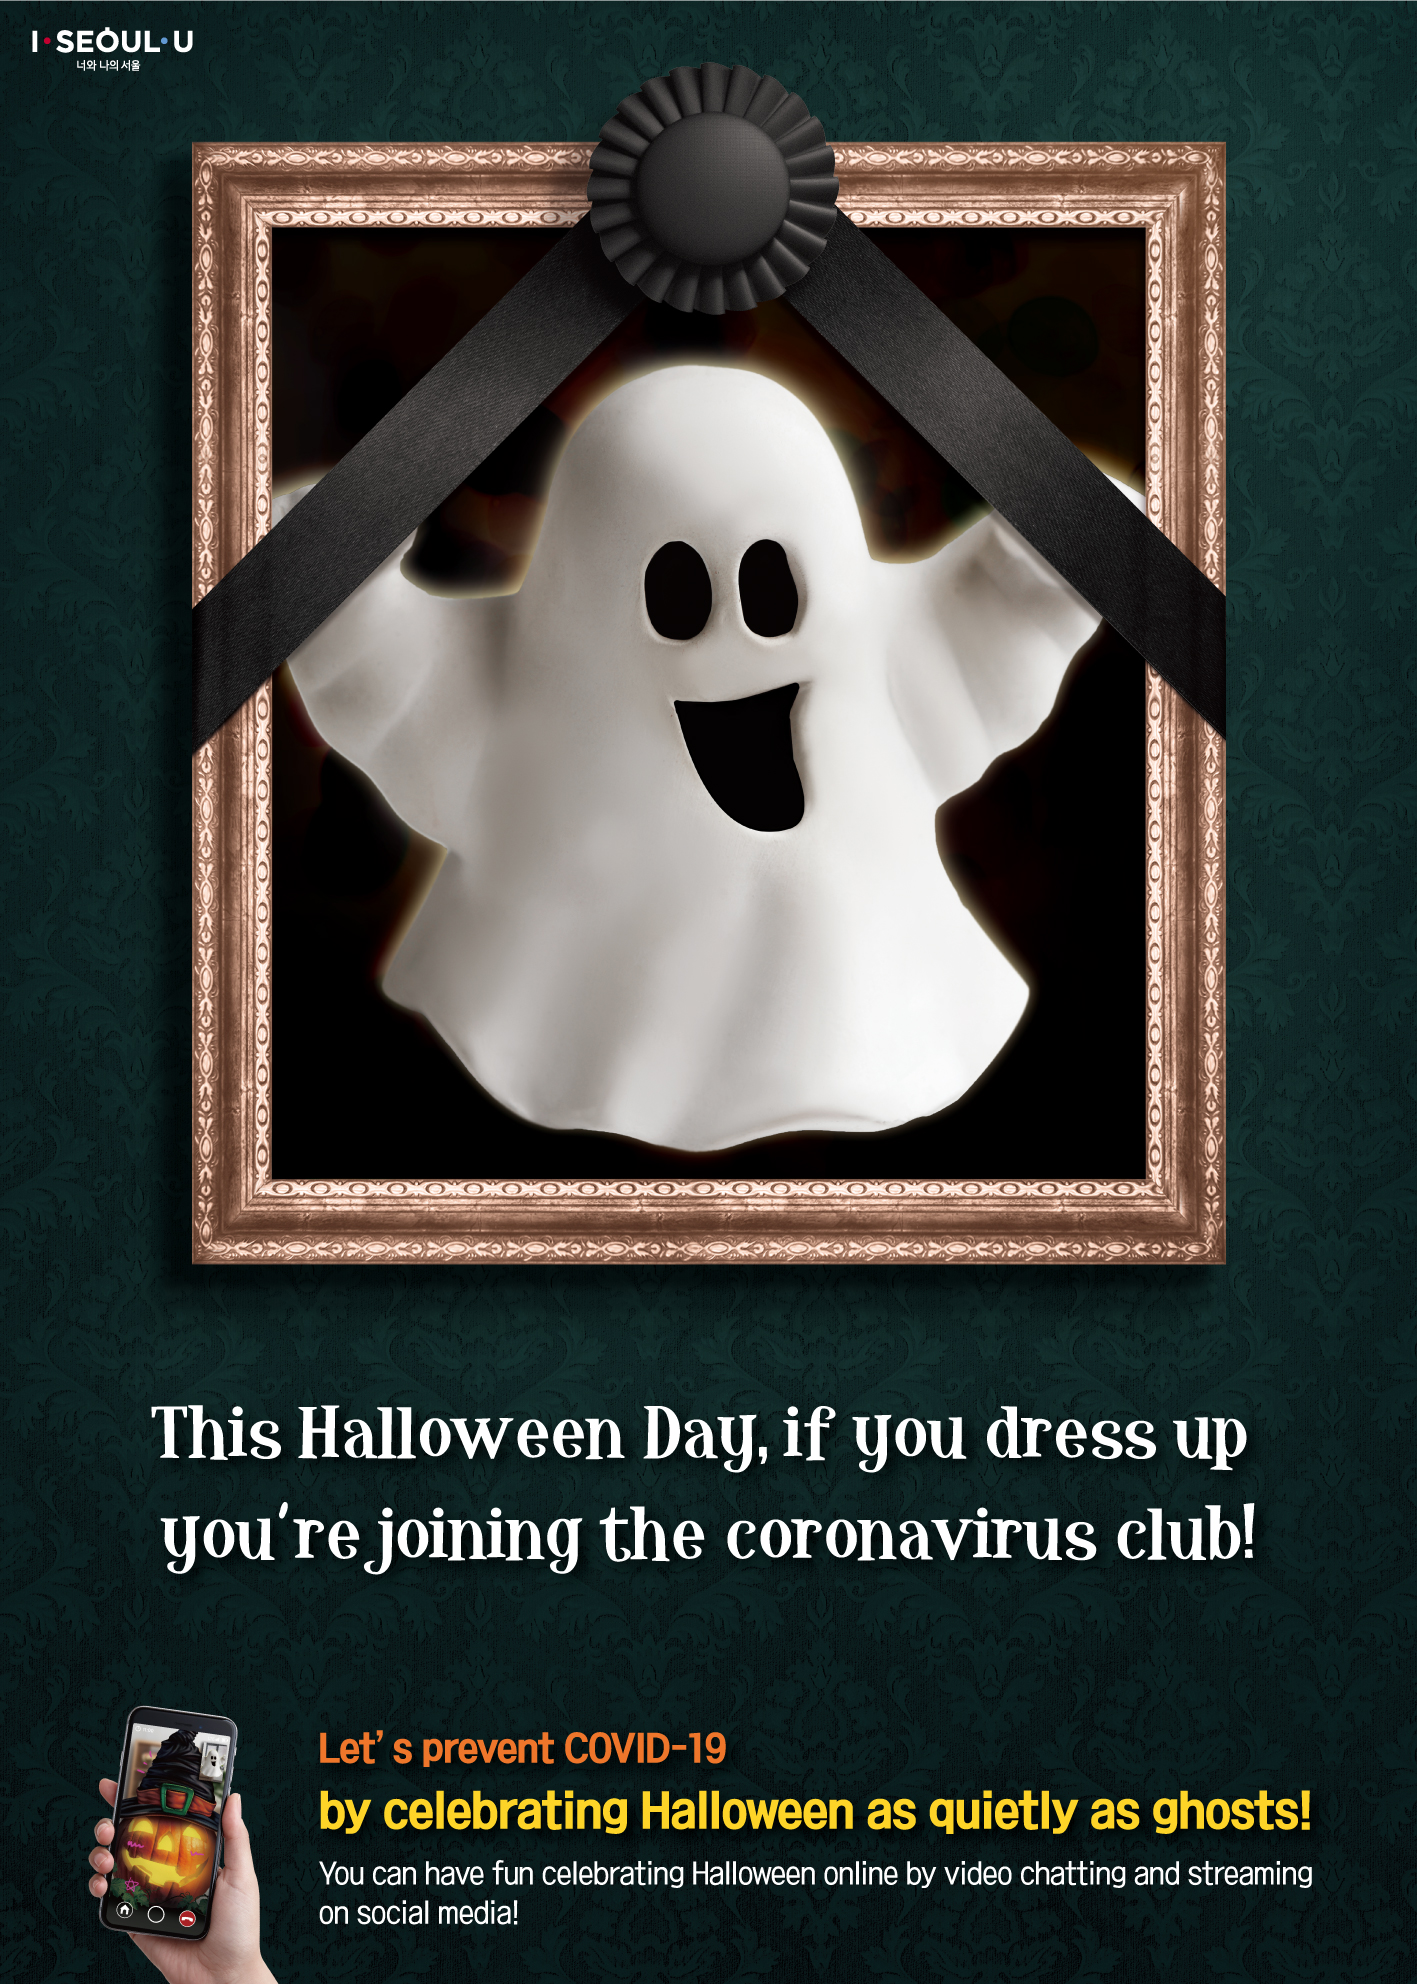 This Halloween Day, if you dress up you're joining the coronavirus club! Let's prevent COVID-19 by celebrating Halloween as quietly as ghosts! You can have fun celebrating Halloween online  by video chatting and streaming on social media!